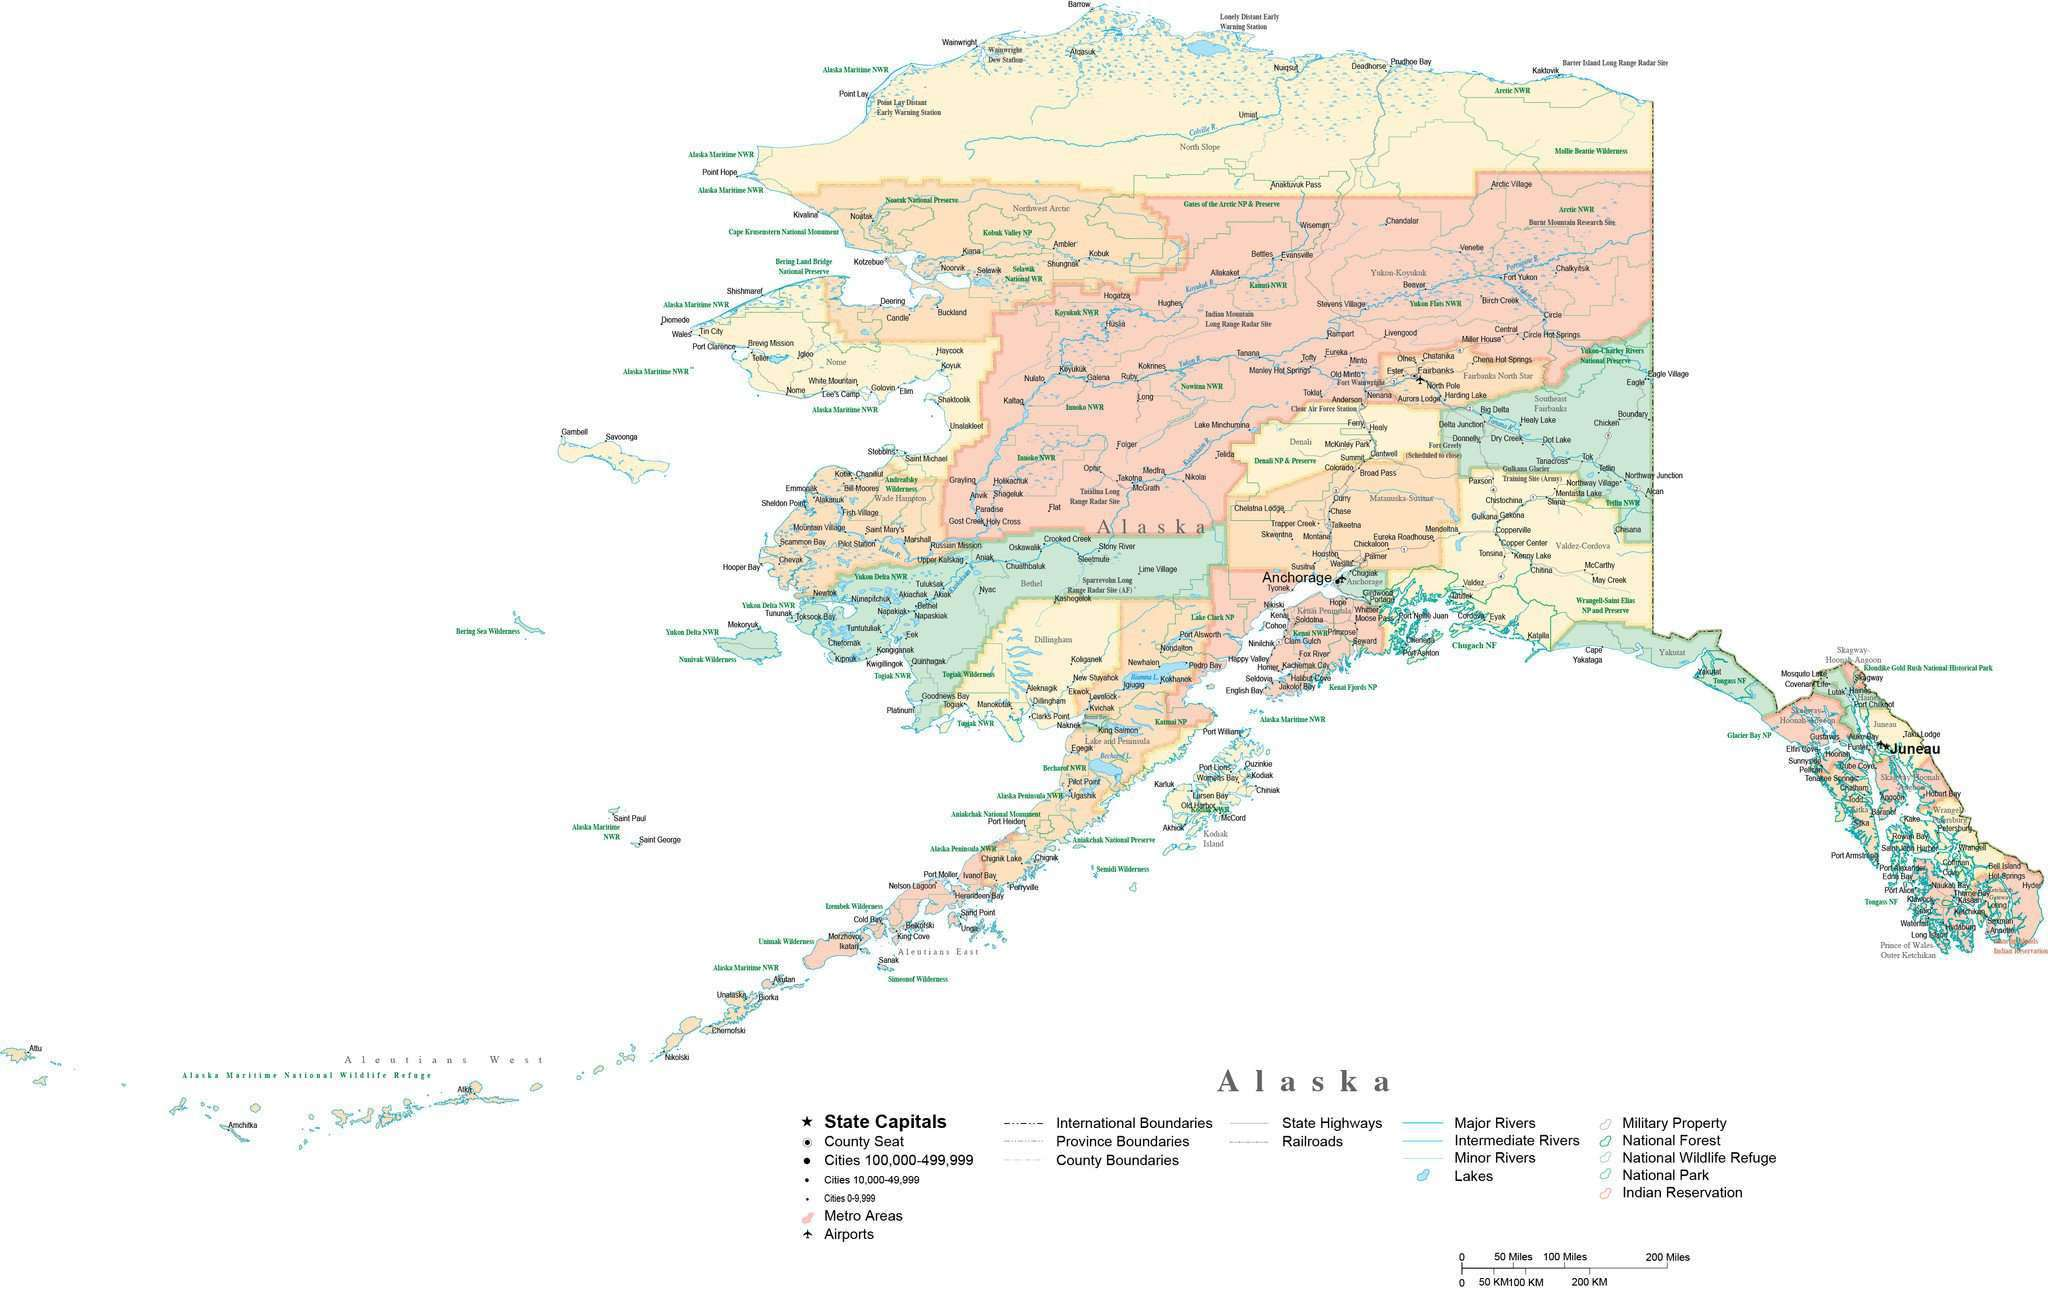 Detailed Alaska Cut-Out Style Digital Map with Counties, Cities, Highways, on map of denver metro cities, map of mississippi river cities, map of greenland cities, map of guam cities, map of illinoise cities, map of mexican riviera cities, map of the carolinas cities, map of mid atlantic cities, map of dc cities, map of queens cities, map of louisville cities, map of georgia cities, map of ohio cities, map of eastern north carolina cities, map of yunnan cities, map of central mexico cities, map of manhattan cities, map of anchorage, map of wisconsin cities, map of gulf of mexico cities,